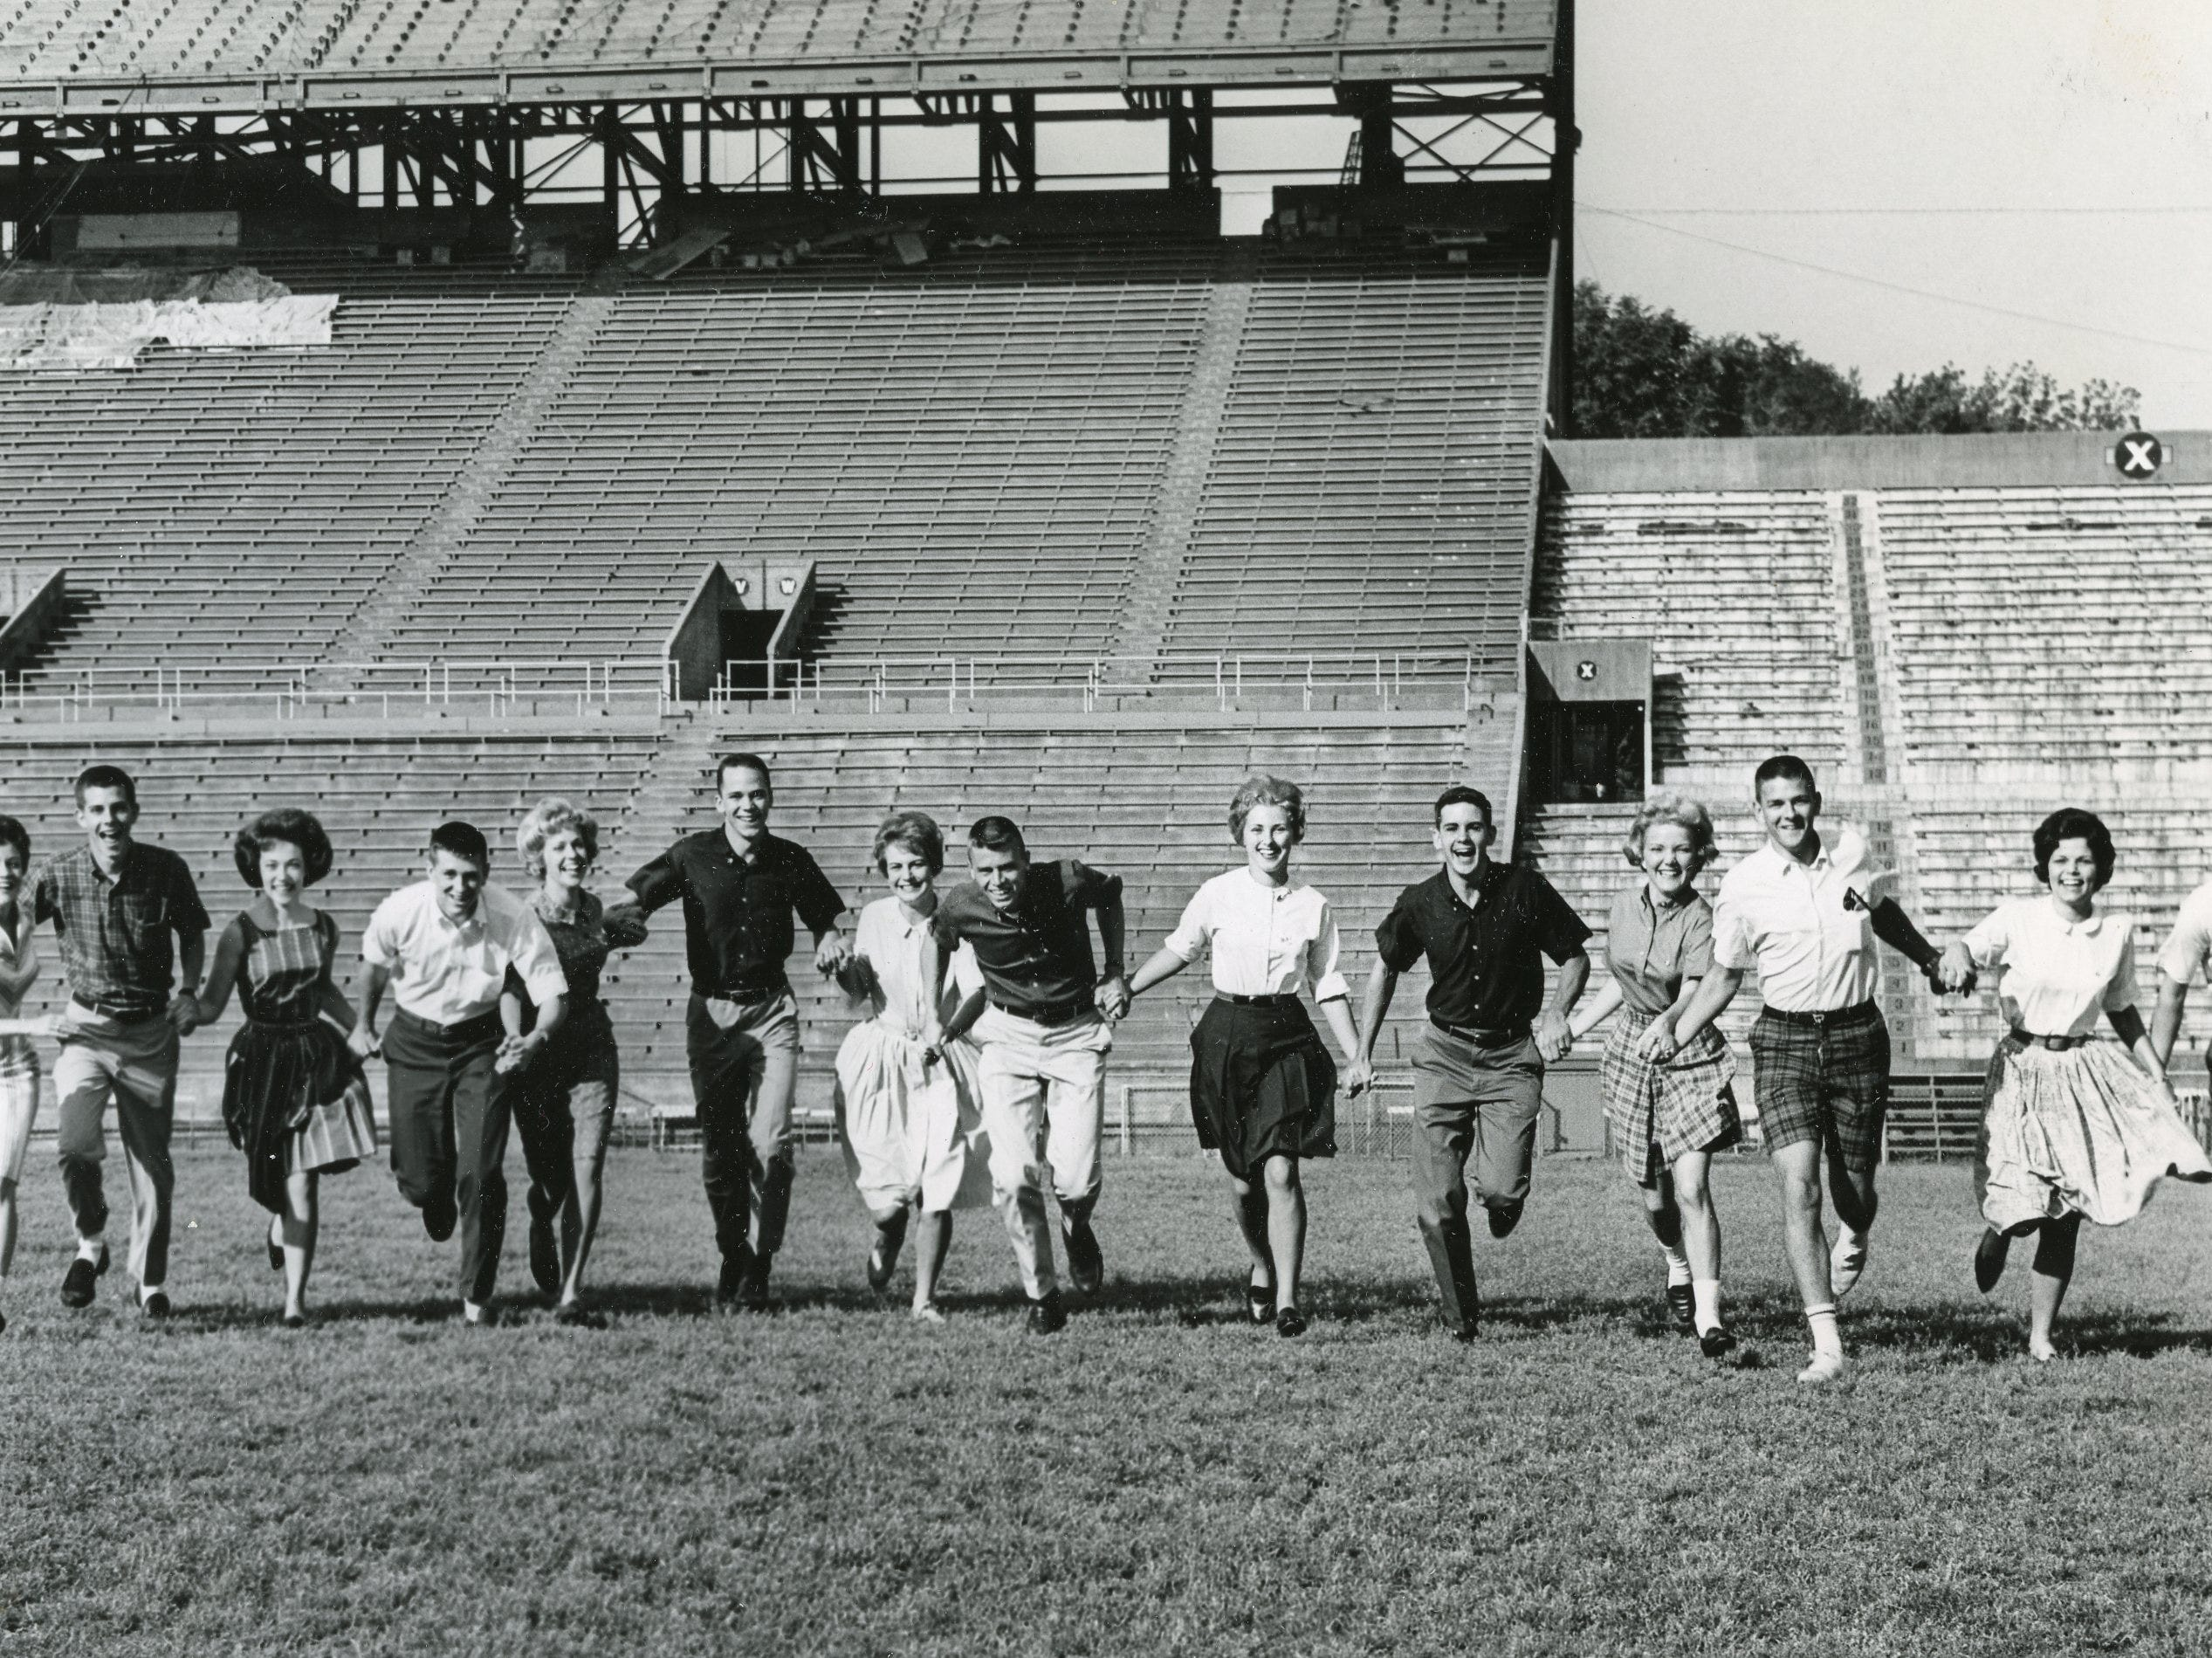 Cheerleaders at UT, 1962, included Linda May, Terry Smith, Sandra Duncan, Peter VonElton, Sally Plunkett, Chuck Dyche, Janet Stanford, Larry McMahon, Wallene Threadgill, Charlie Baker, Sue Novotny, Jim Bankston, Elisabeth Shafer and Tommy Leak.